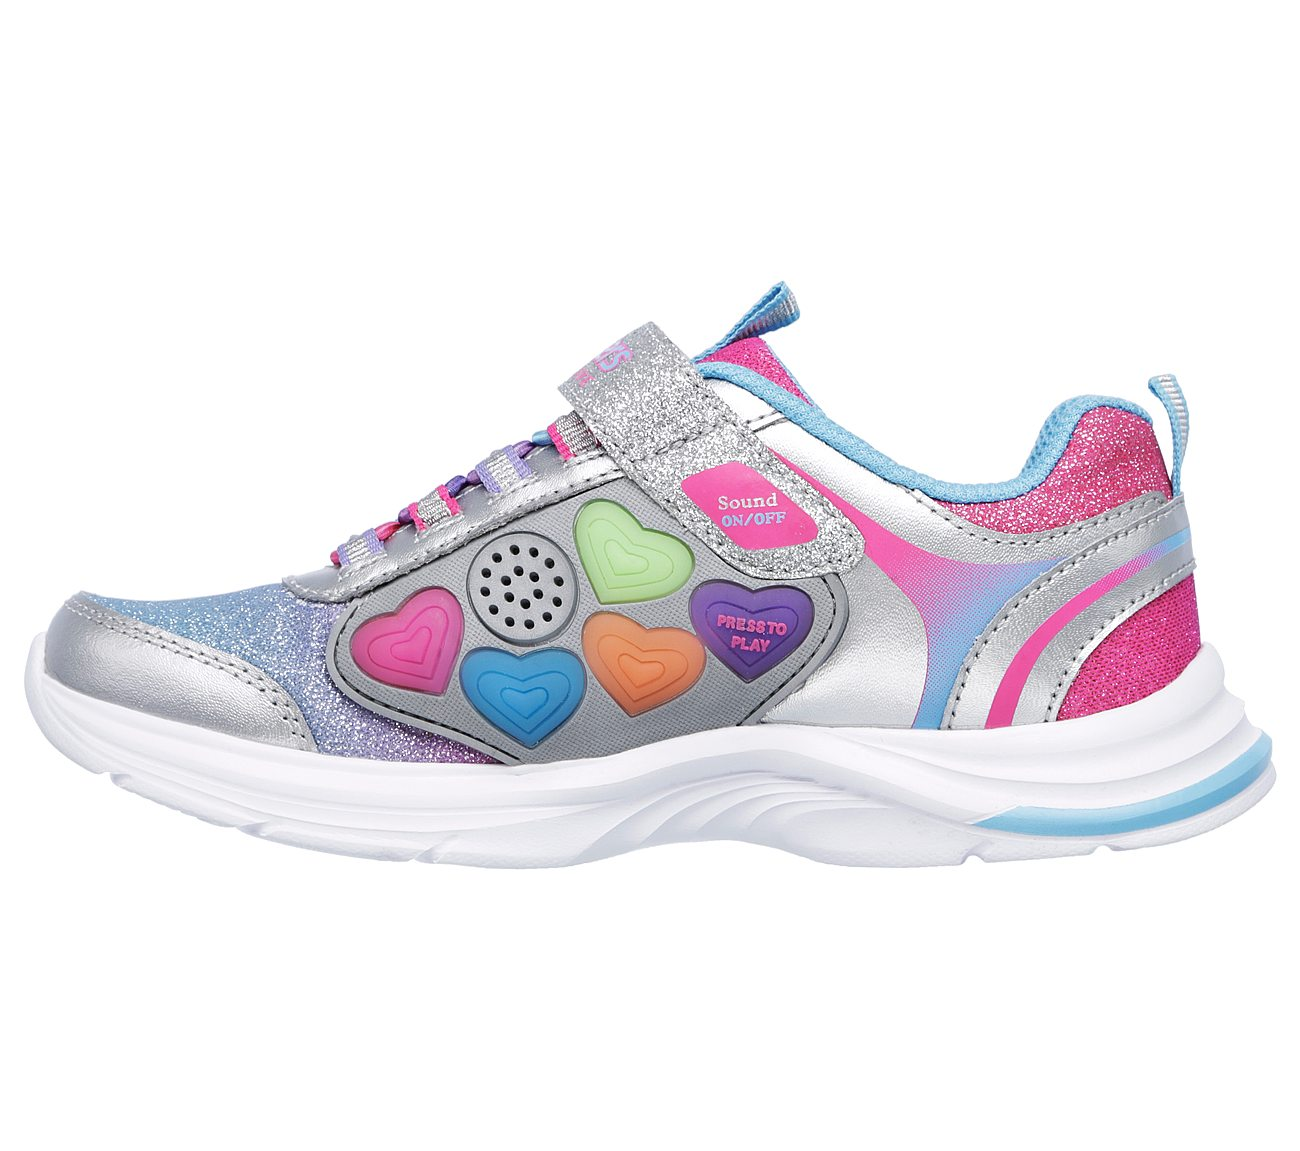 Buy Skechers Game Kicks Swift Kicks Super Skillz Bungee Shoes Shoes